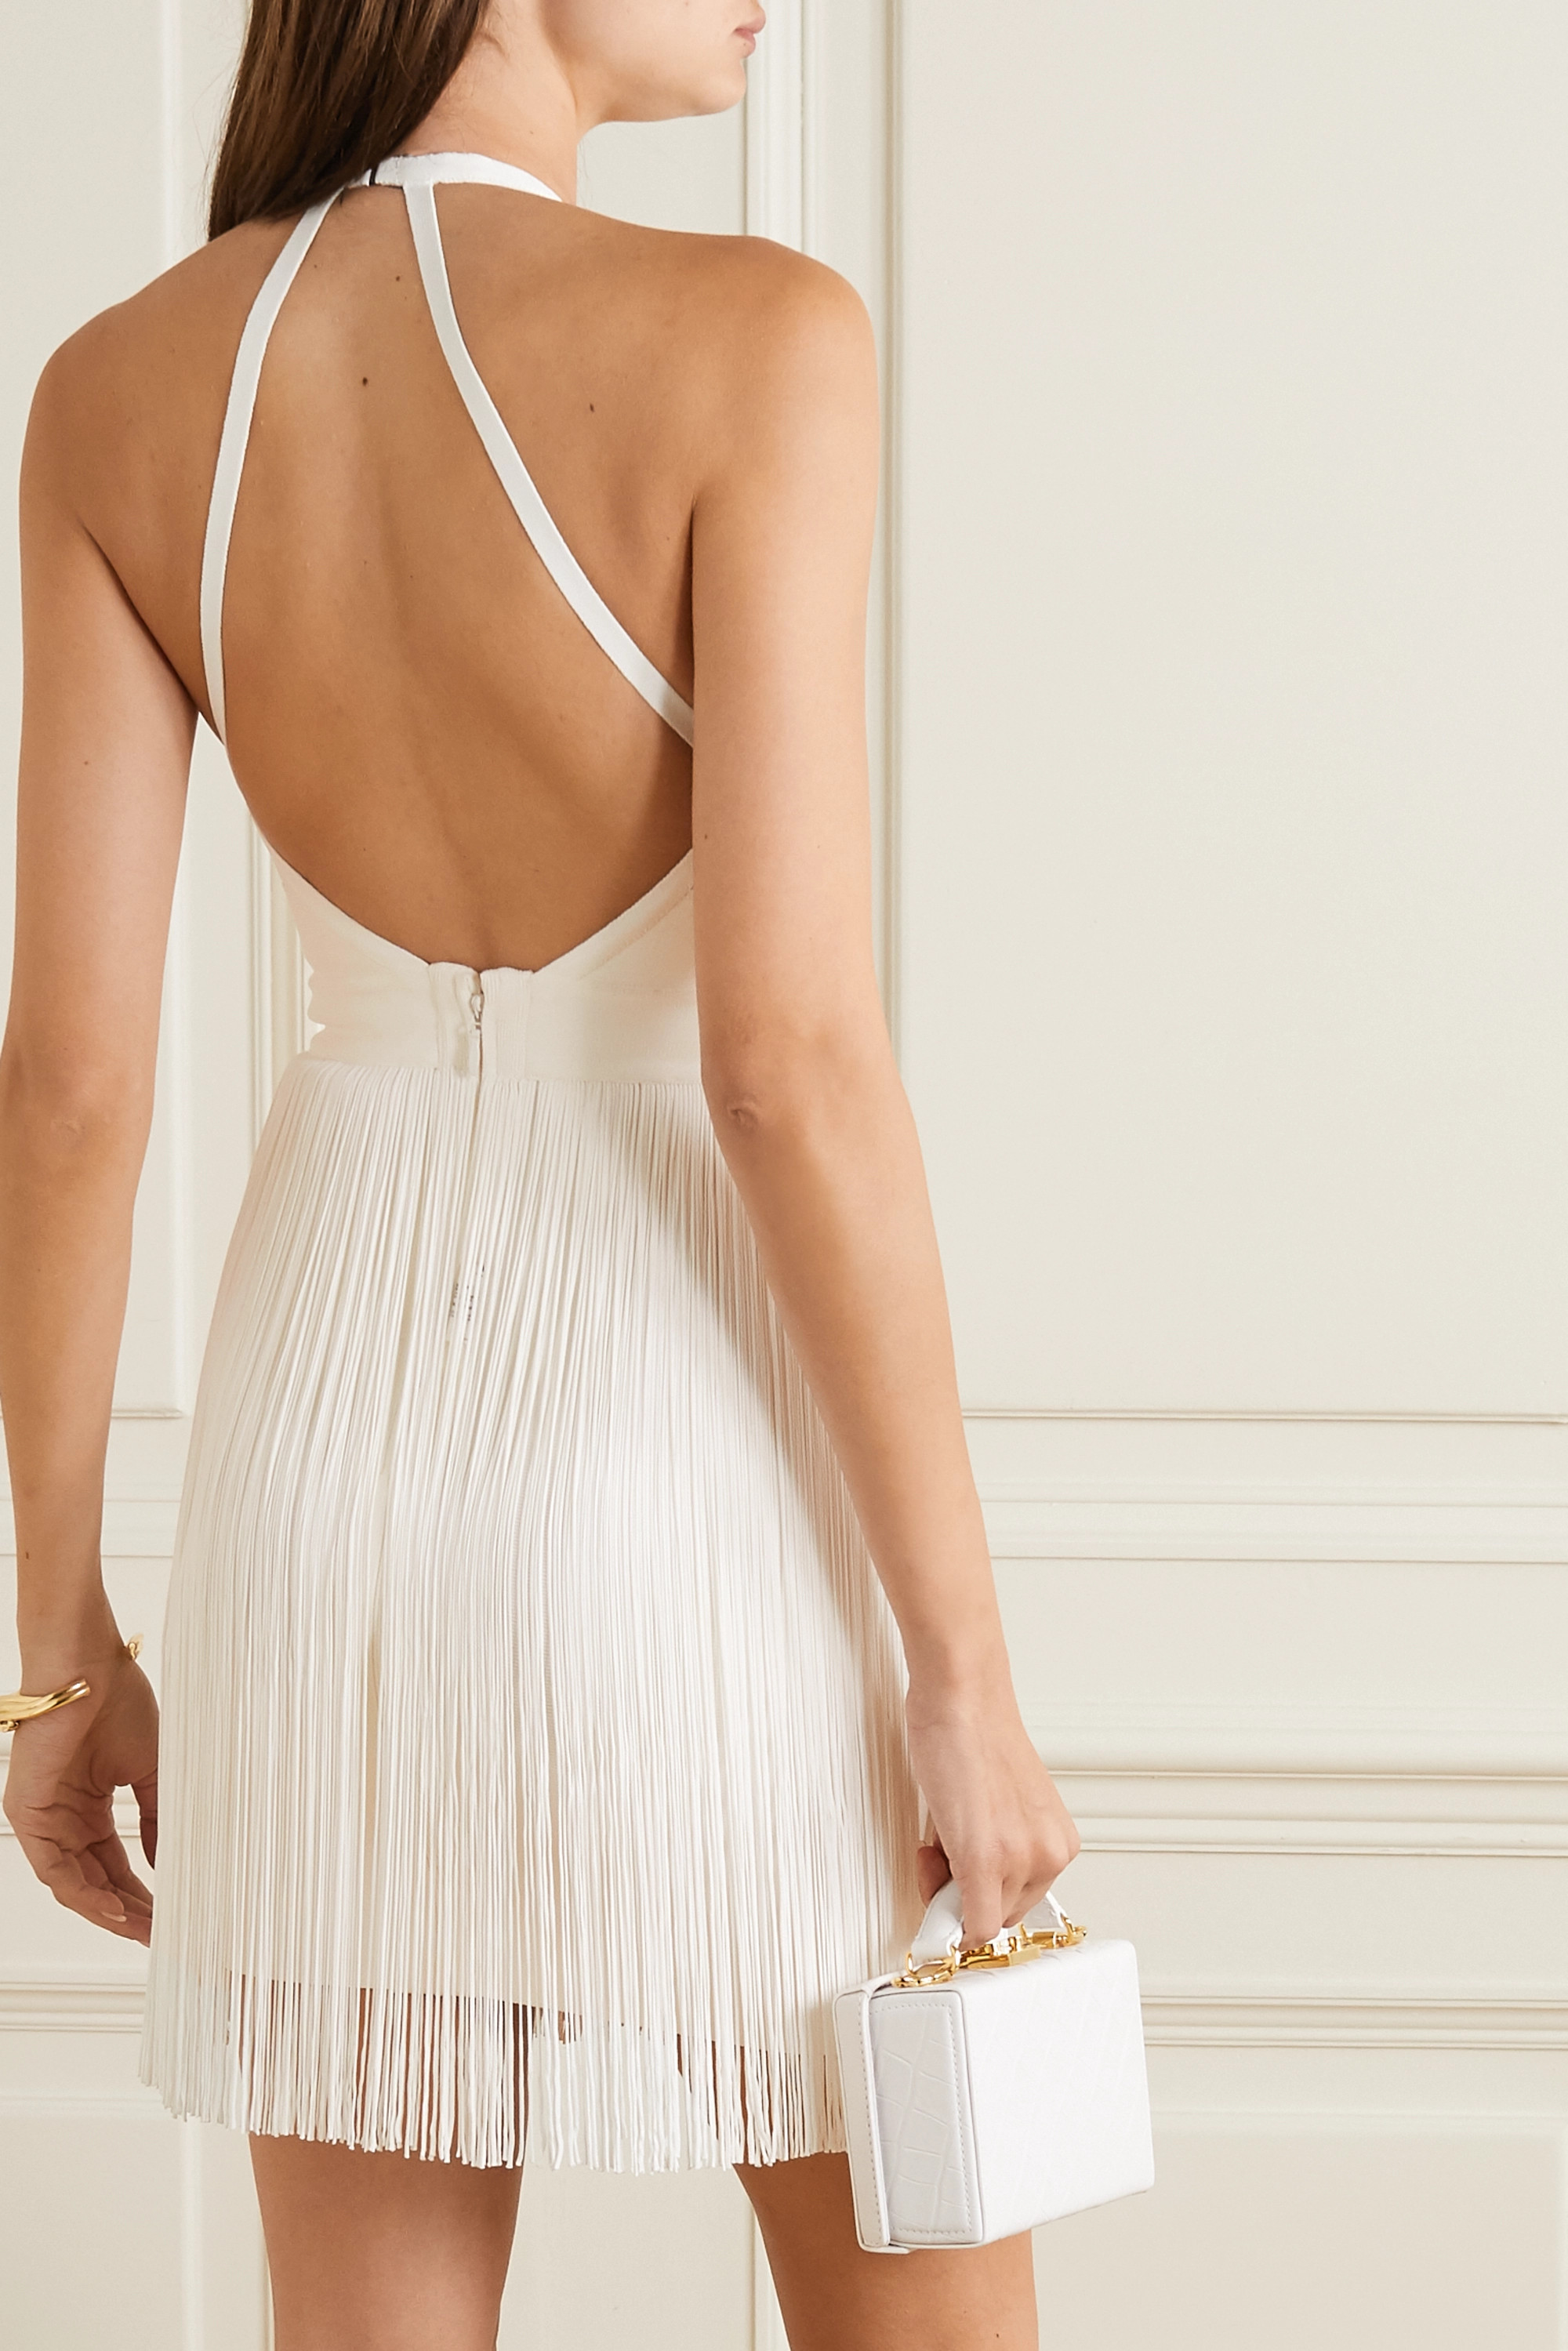 Fashion Forms Go Bare self-adhesive backless strapless bra